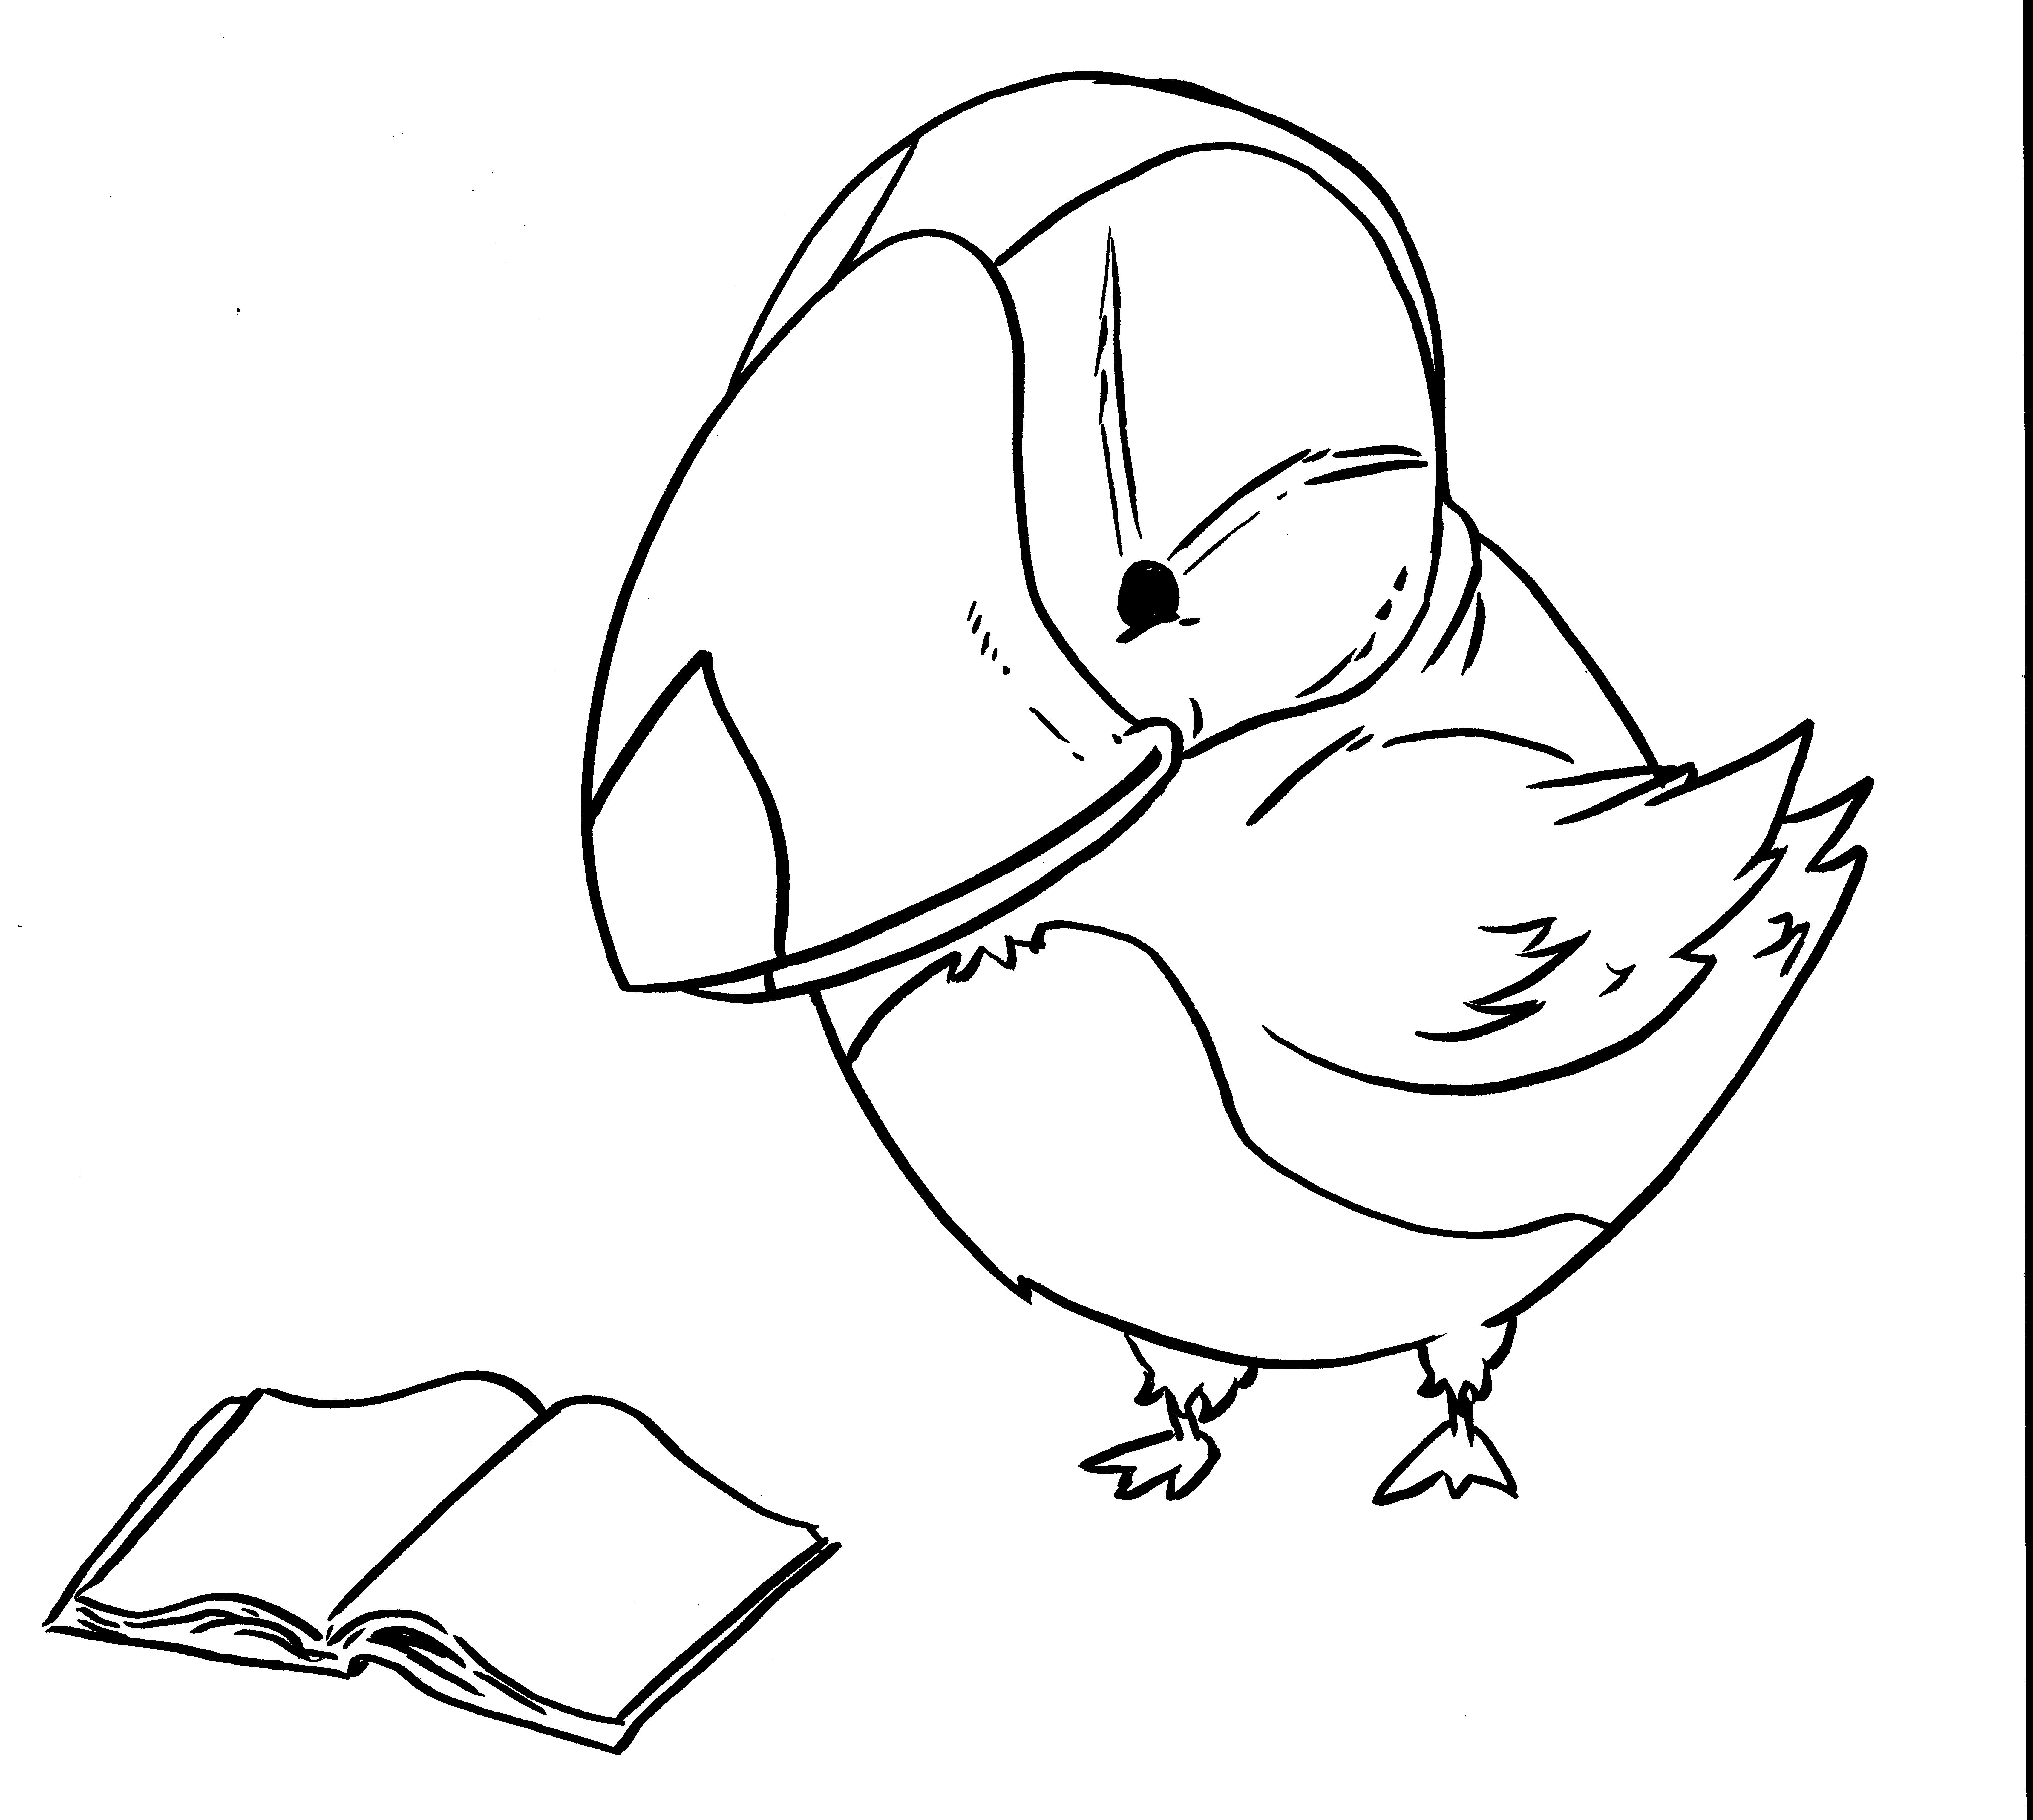 puffin coloring sheet